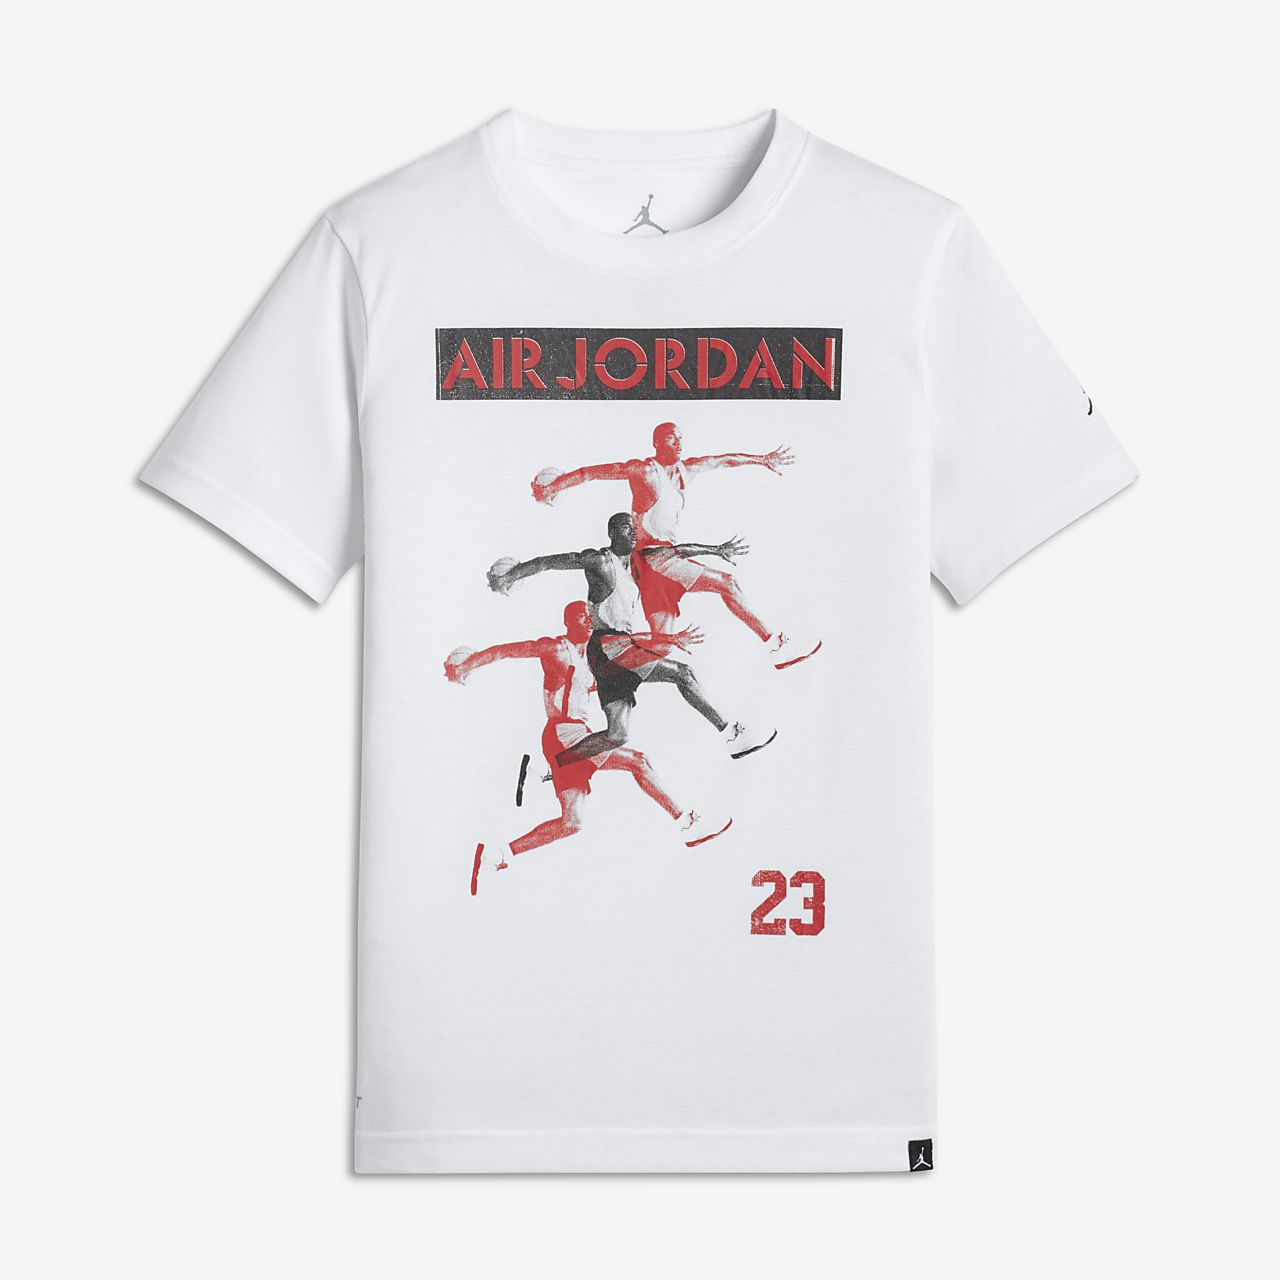 39c24ae5b89ae4 Air Jordan Younger Kids  (Boys ) T-Shirt. Nike.com GB